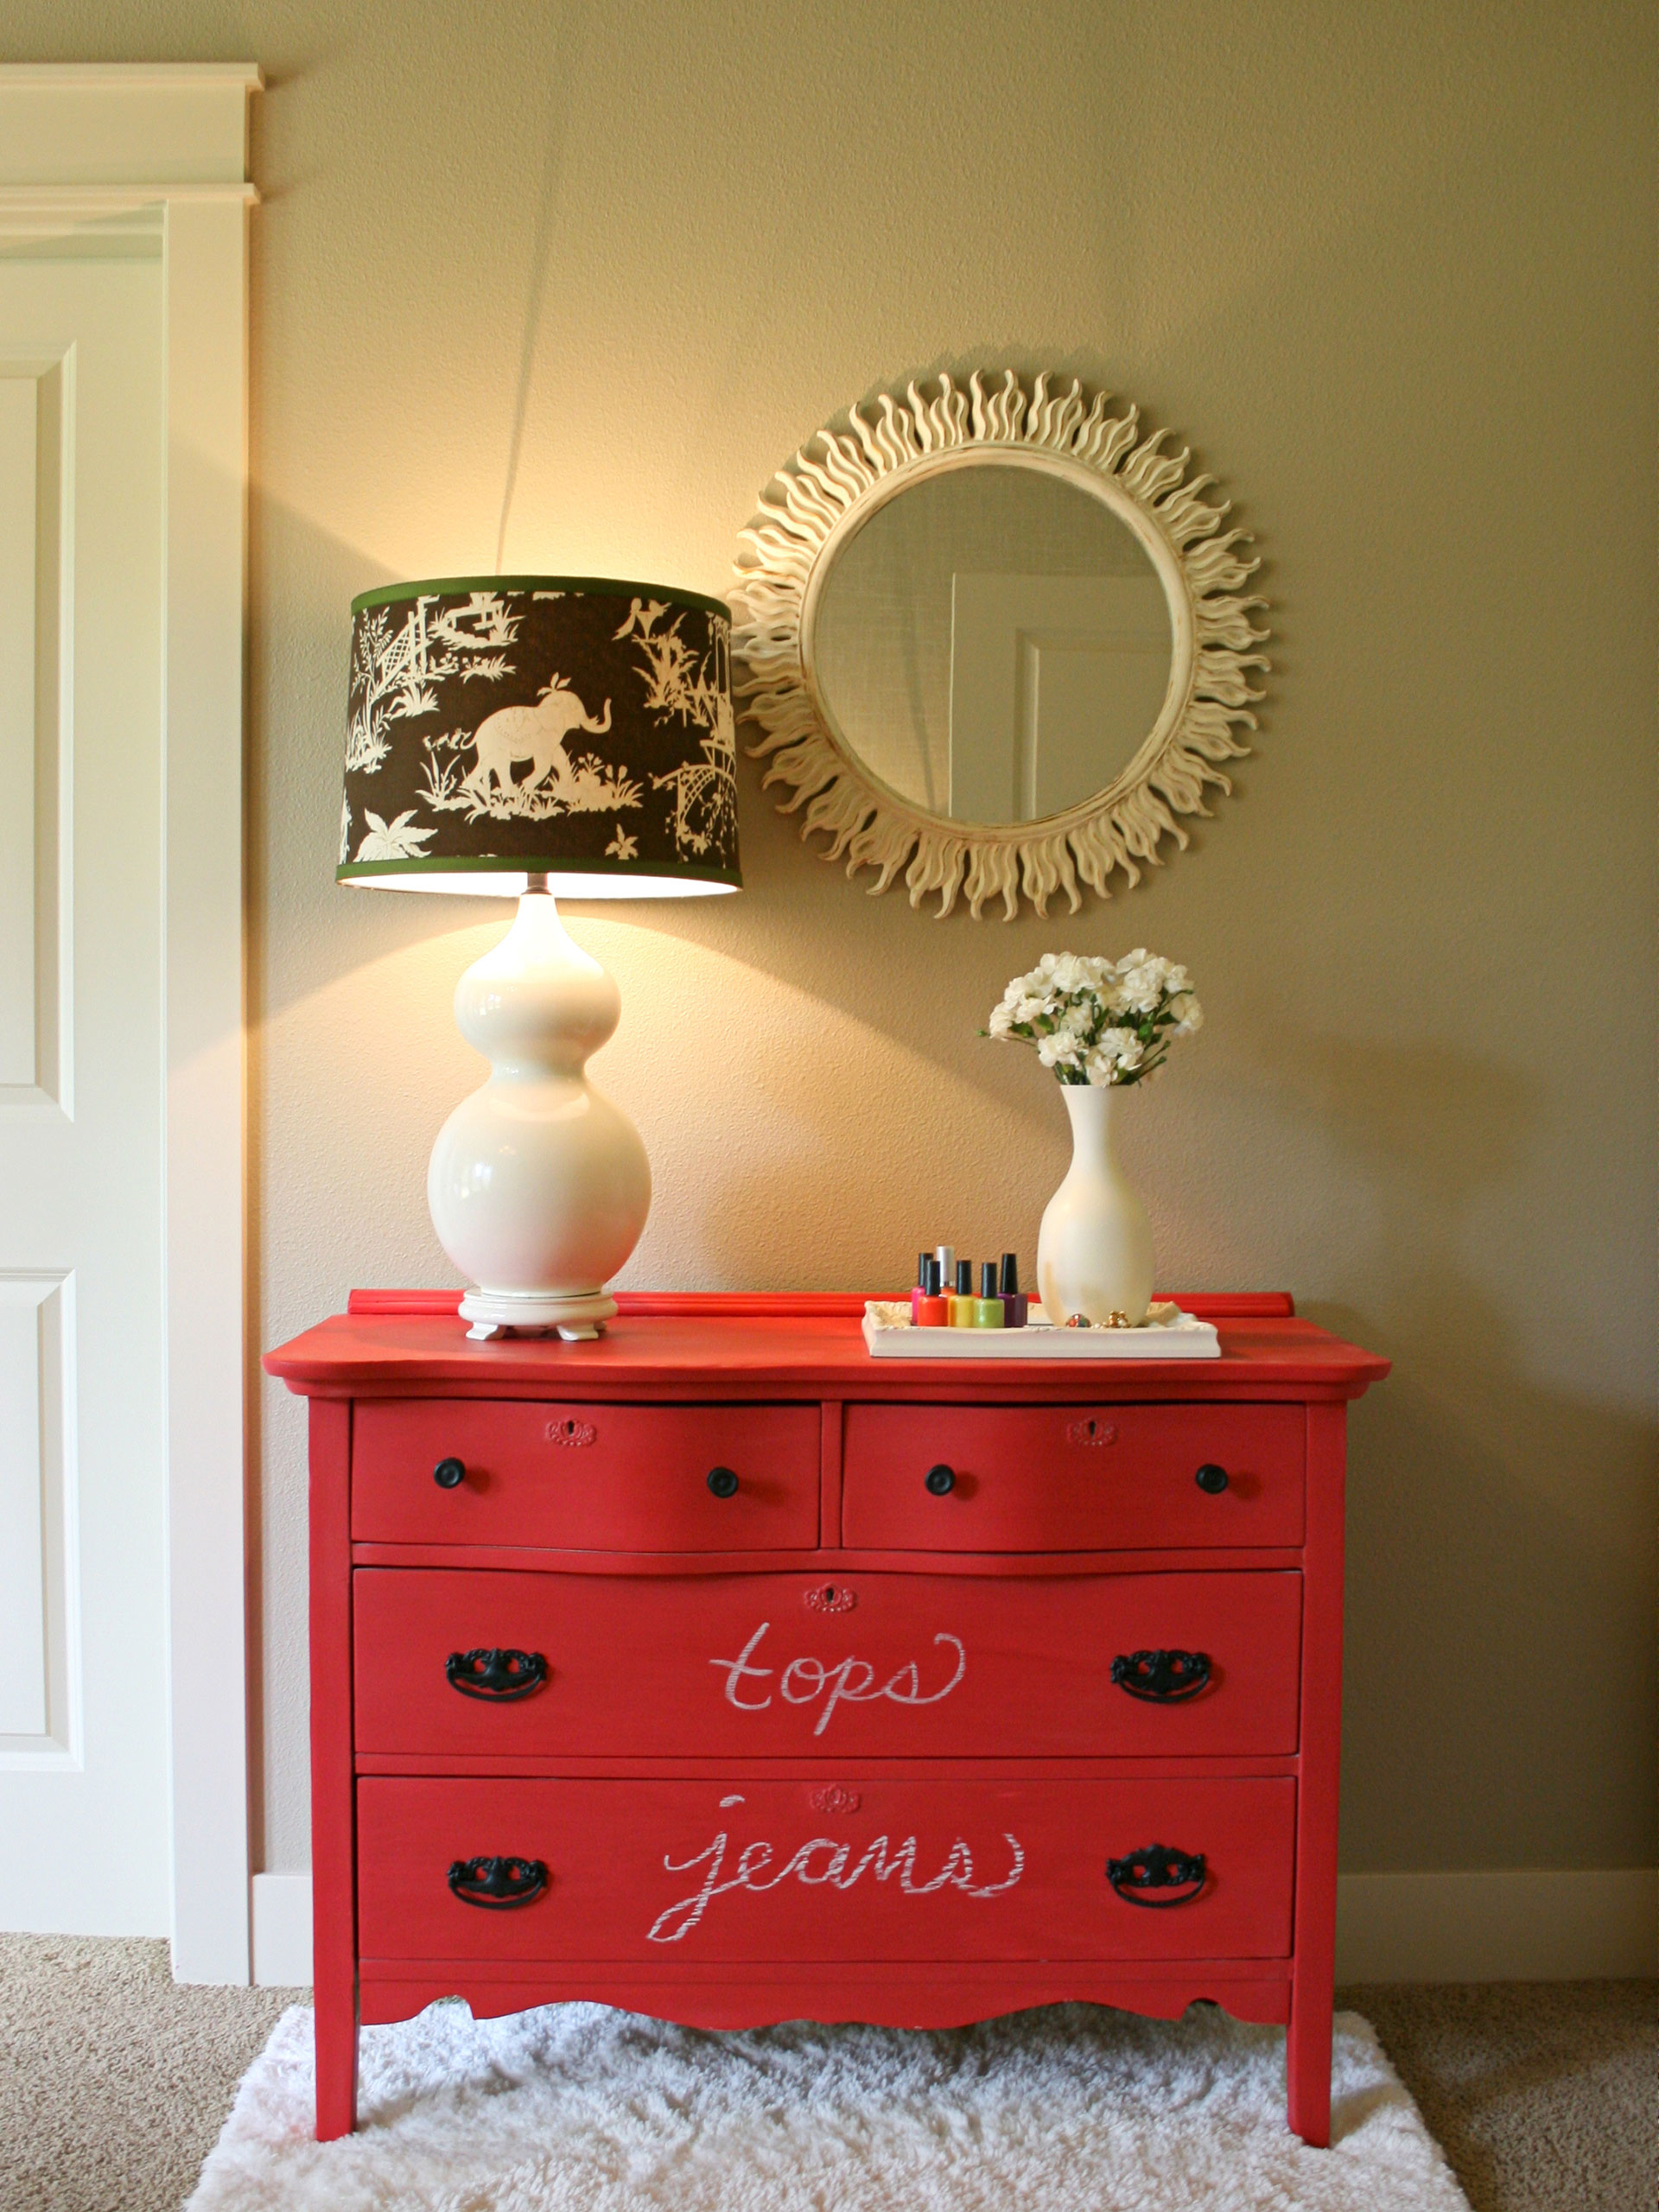 Easy Home DIY Projects - DIY Ideas for Couples